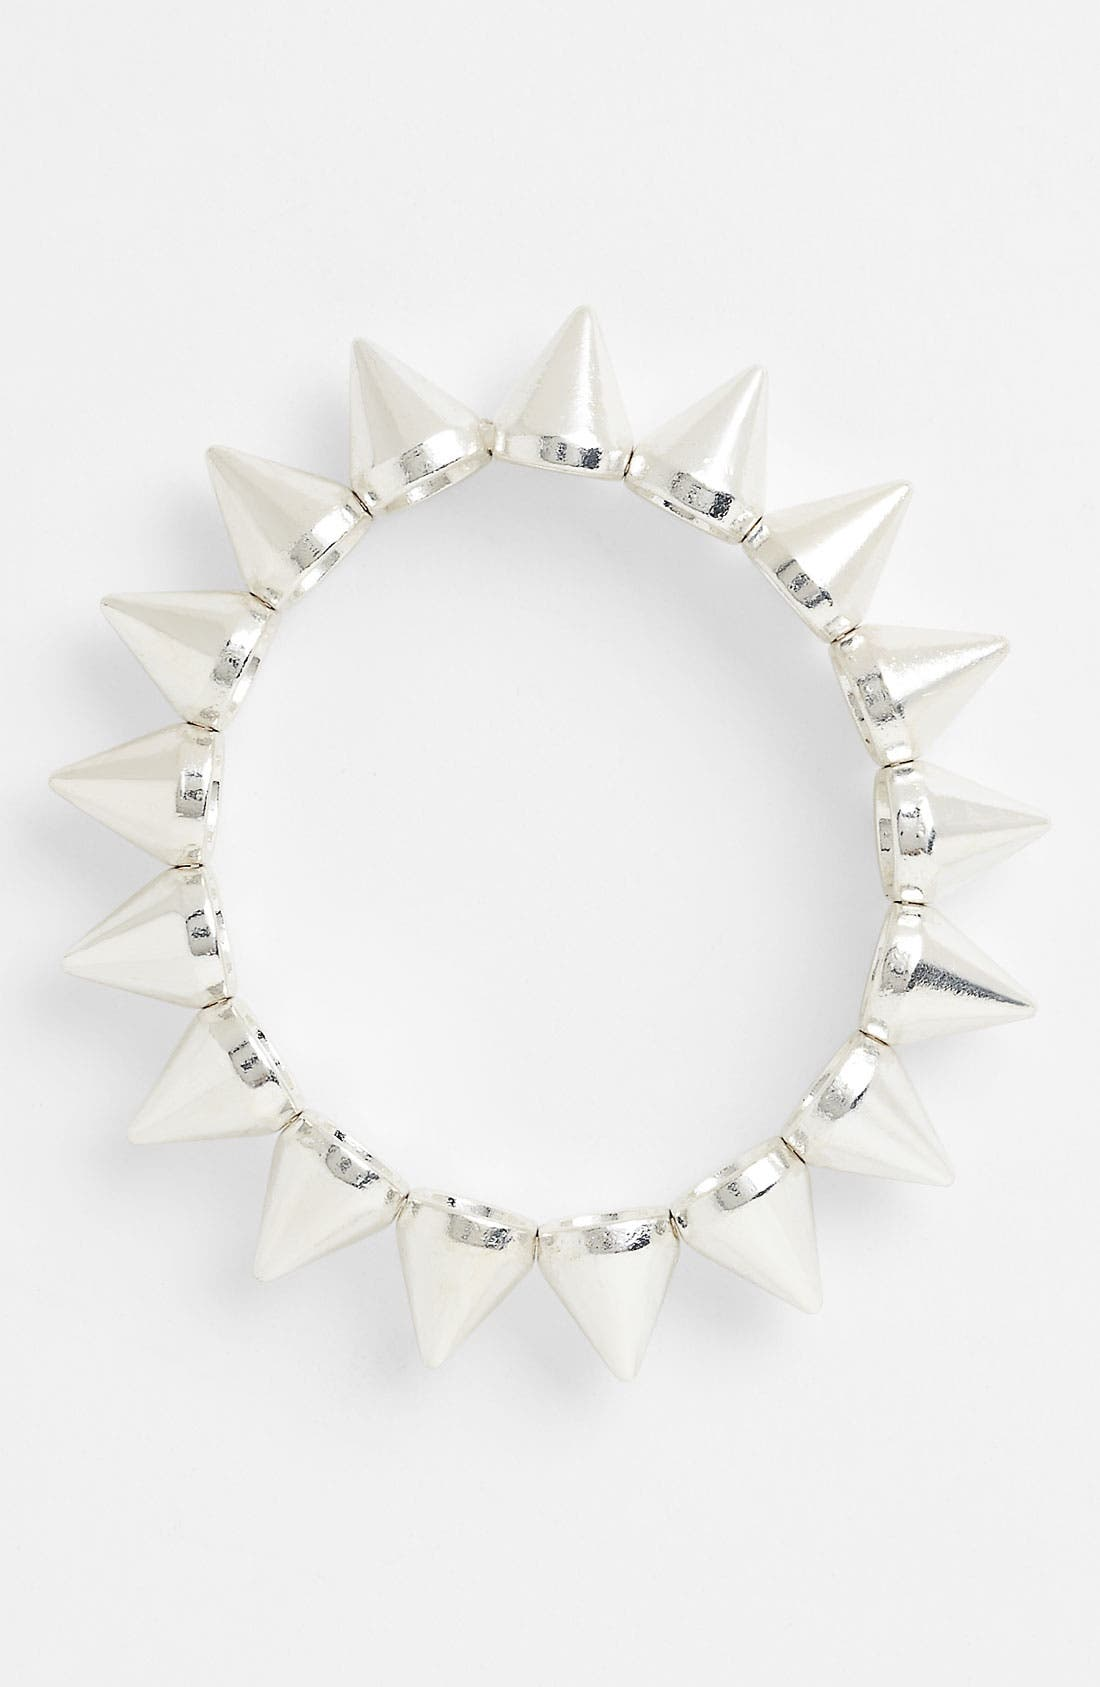 Alternate Image 1 Selected - Carole Spike Bracelet (Online Exclusive)